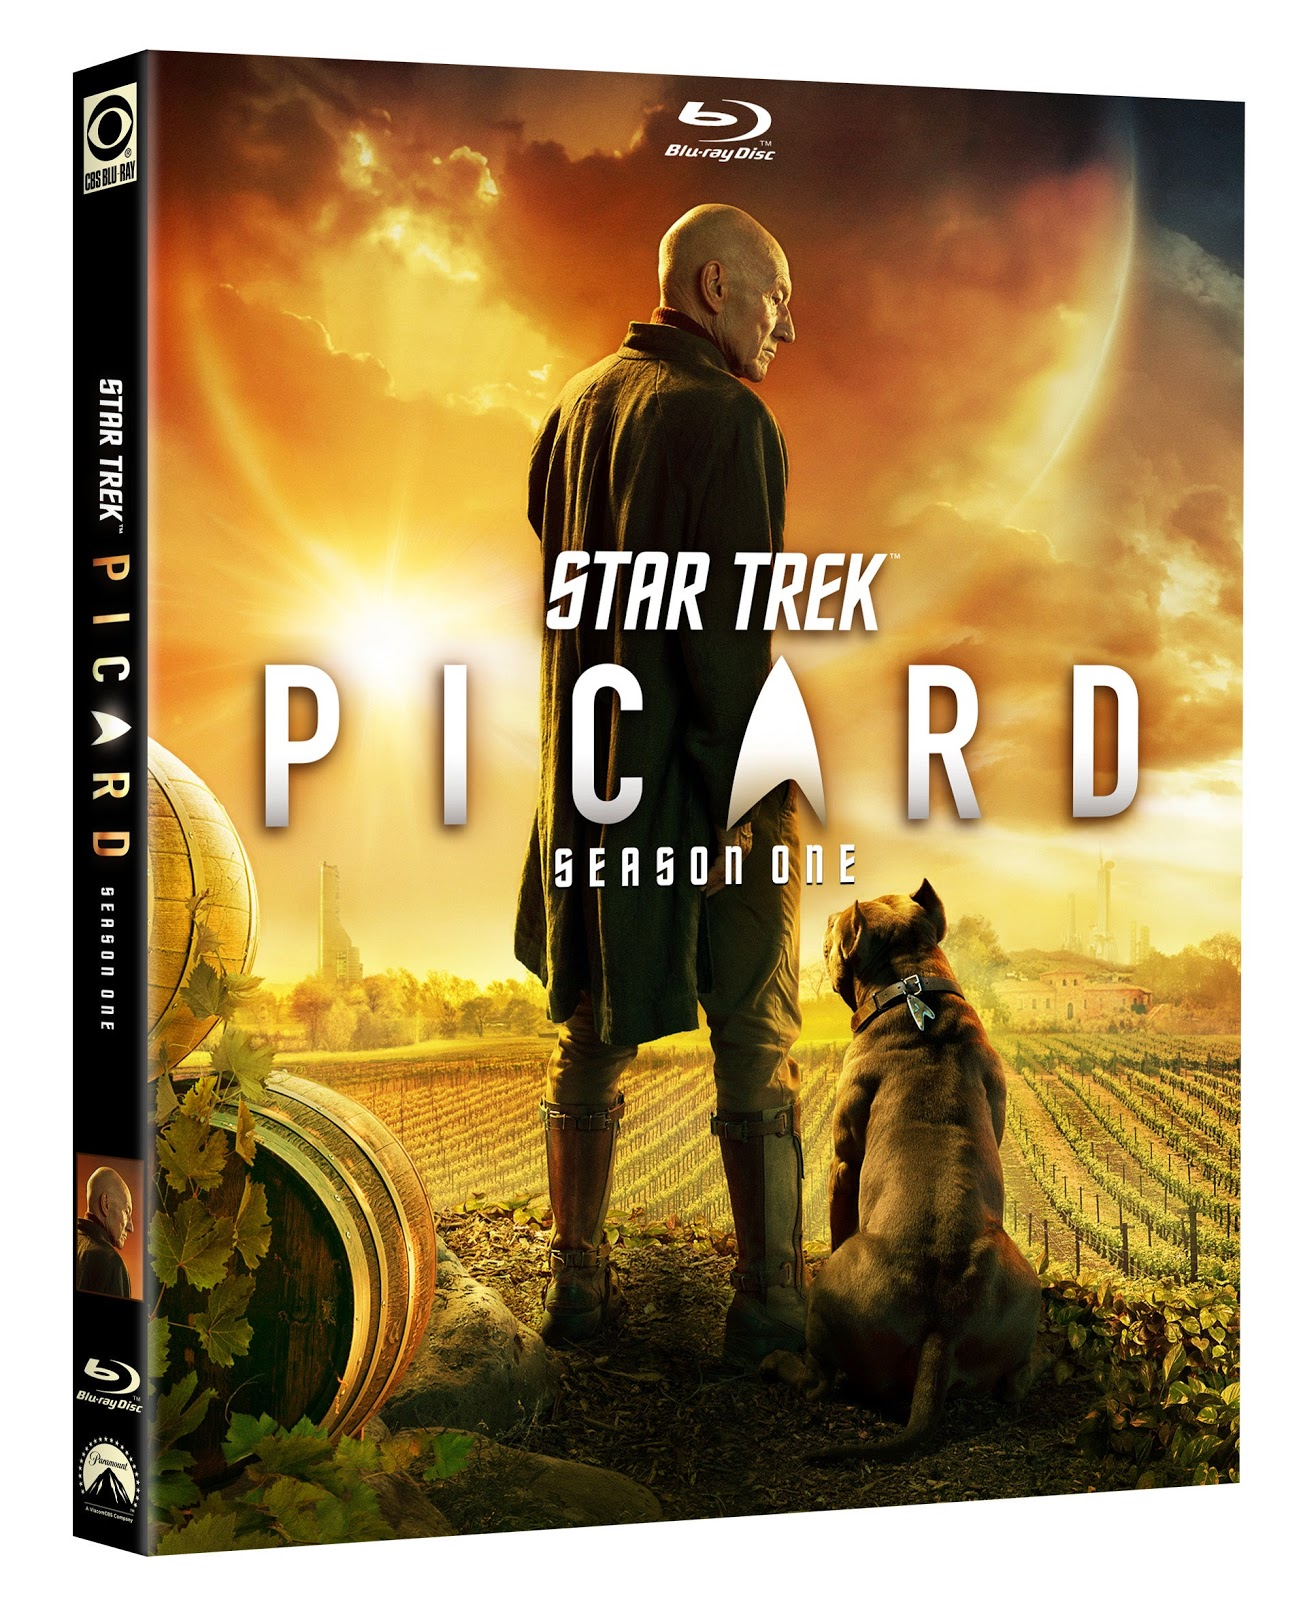 Star Trek Picard season 1 Blu-ray packaging